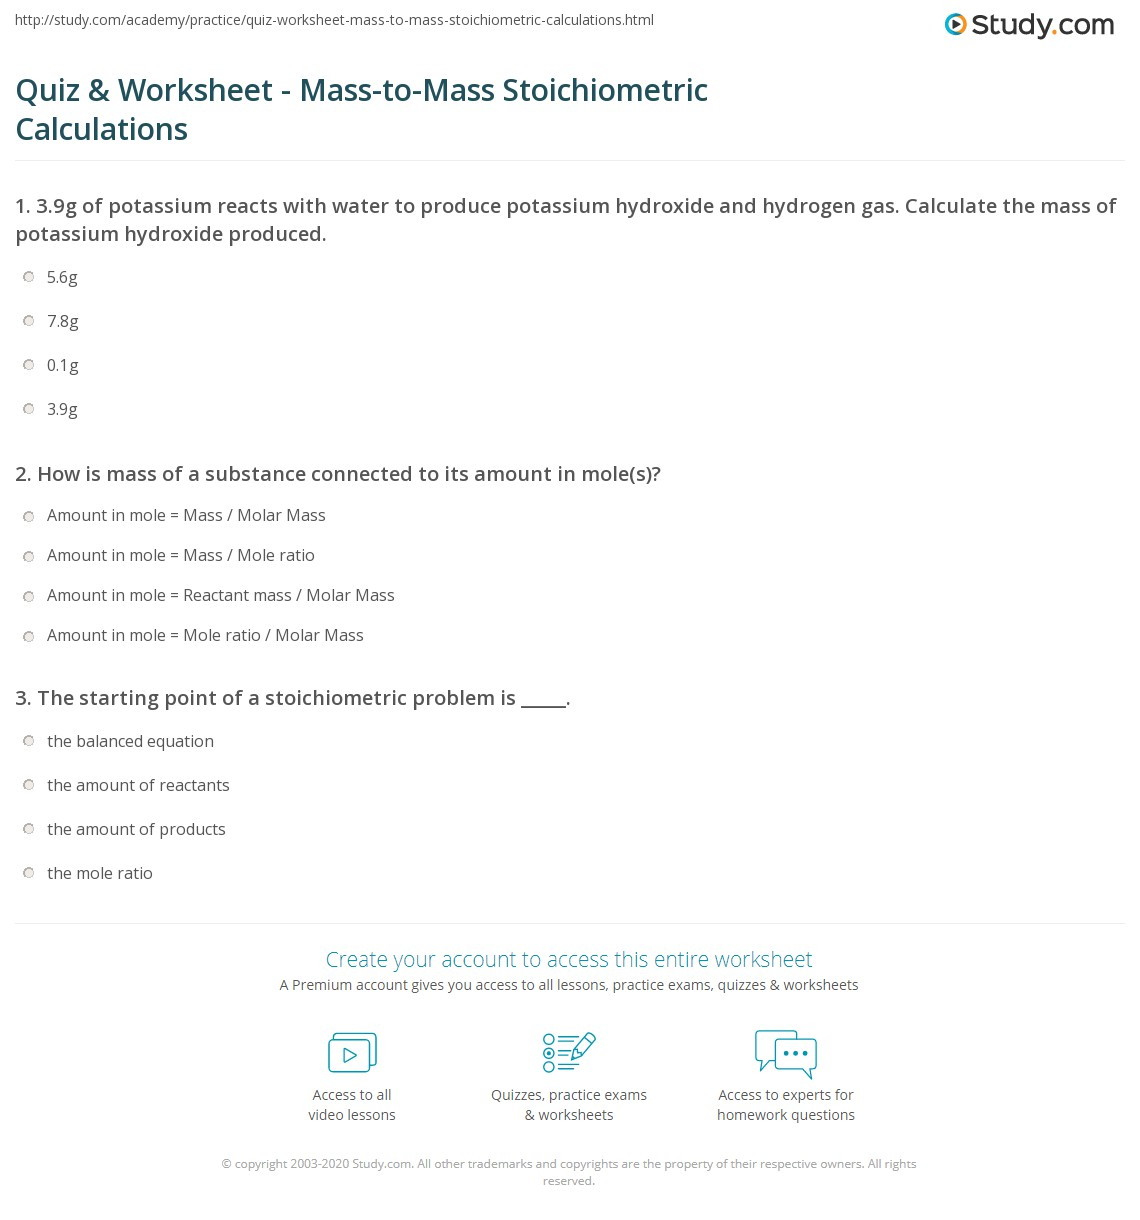 Quiz & Worksheet - Mass-to-Mass Stoichiometric Calculations | Study.com